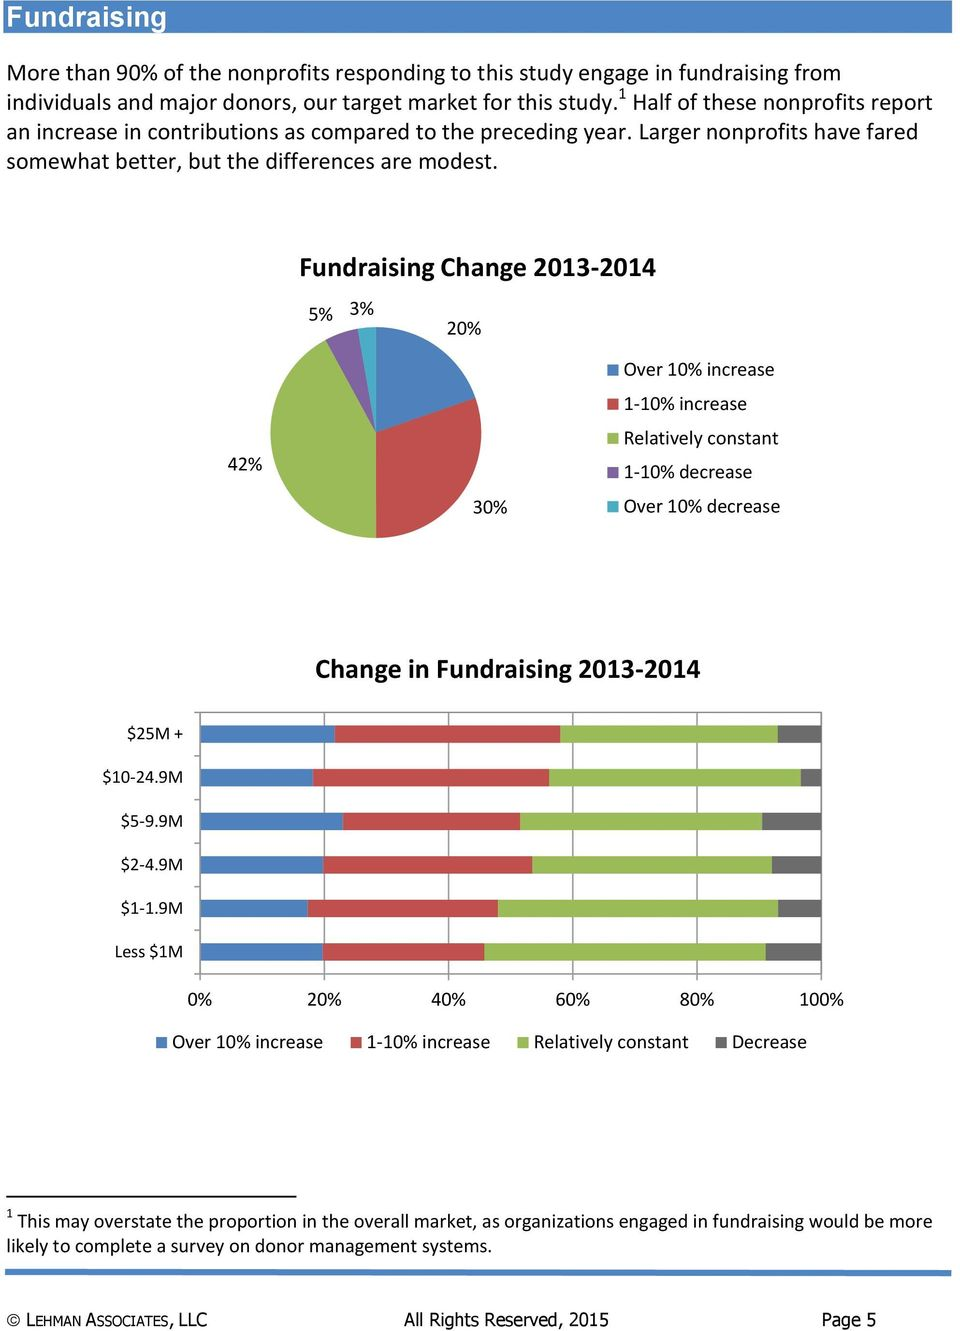 Fundraising Change 2013-2014 5% 3% 20% 42% 30% Over 10% increase 1-10% increase Relatively constant 1-10% decrease Over 10% decrease Change in Fundraising 2013-2014 $25M + $10-24.9M $5-9.9M $2-4.